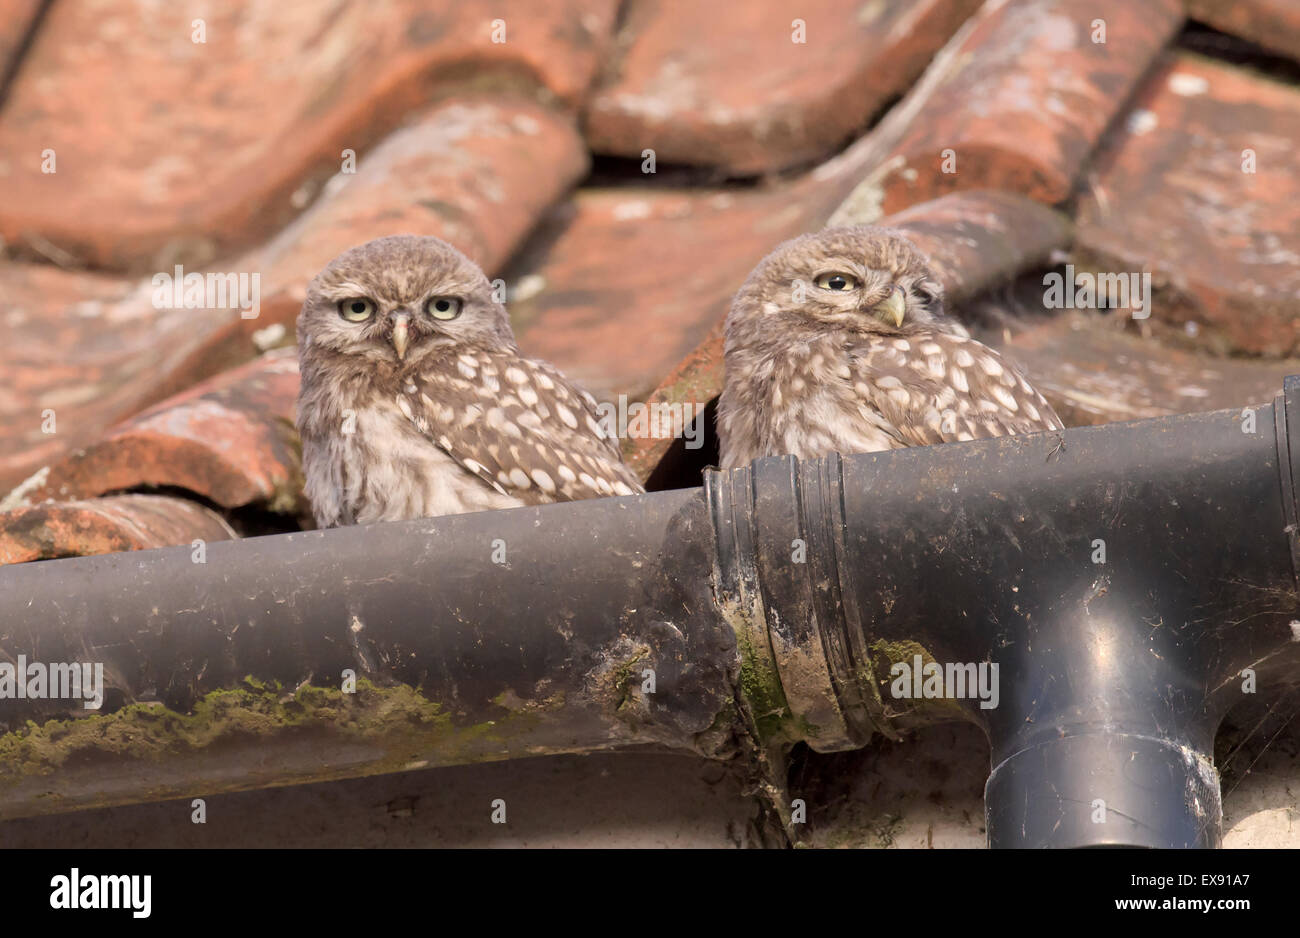 Two Cute Little Owl fledglings (Athene noctua) sitting in roof guttering of farmhouse - Stock Image